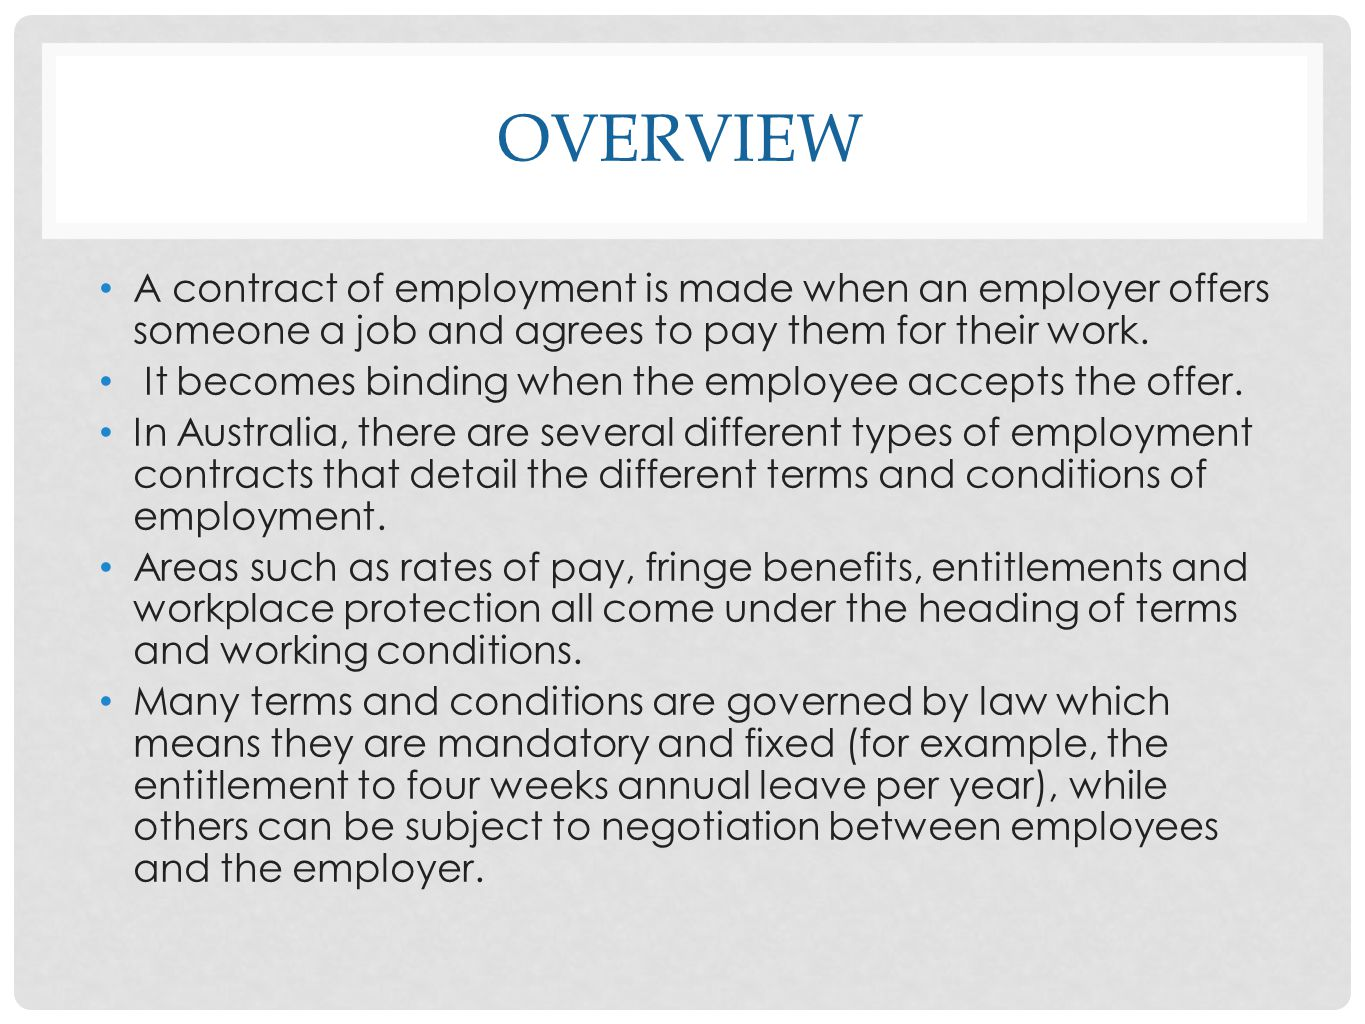 OVERVIEW A contract of employment is made when an employer offers someone a job and agrees to pay them for their work. It becomes binding when the emp